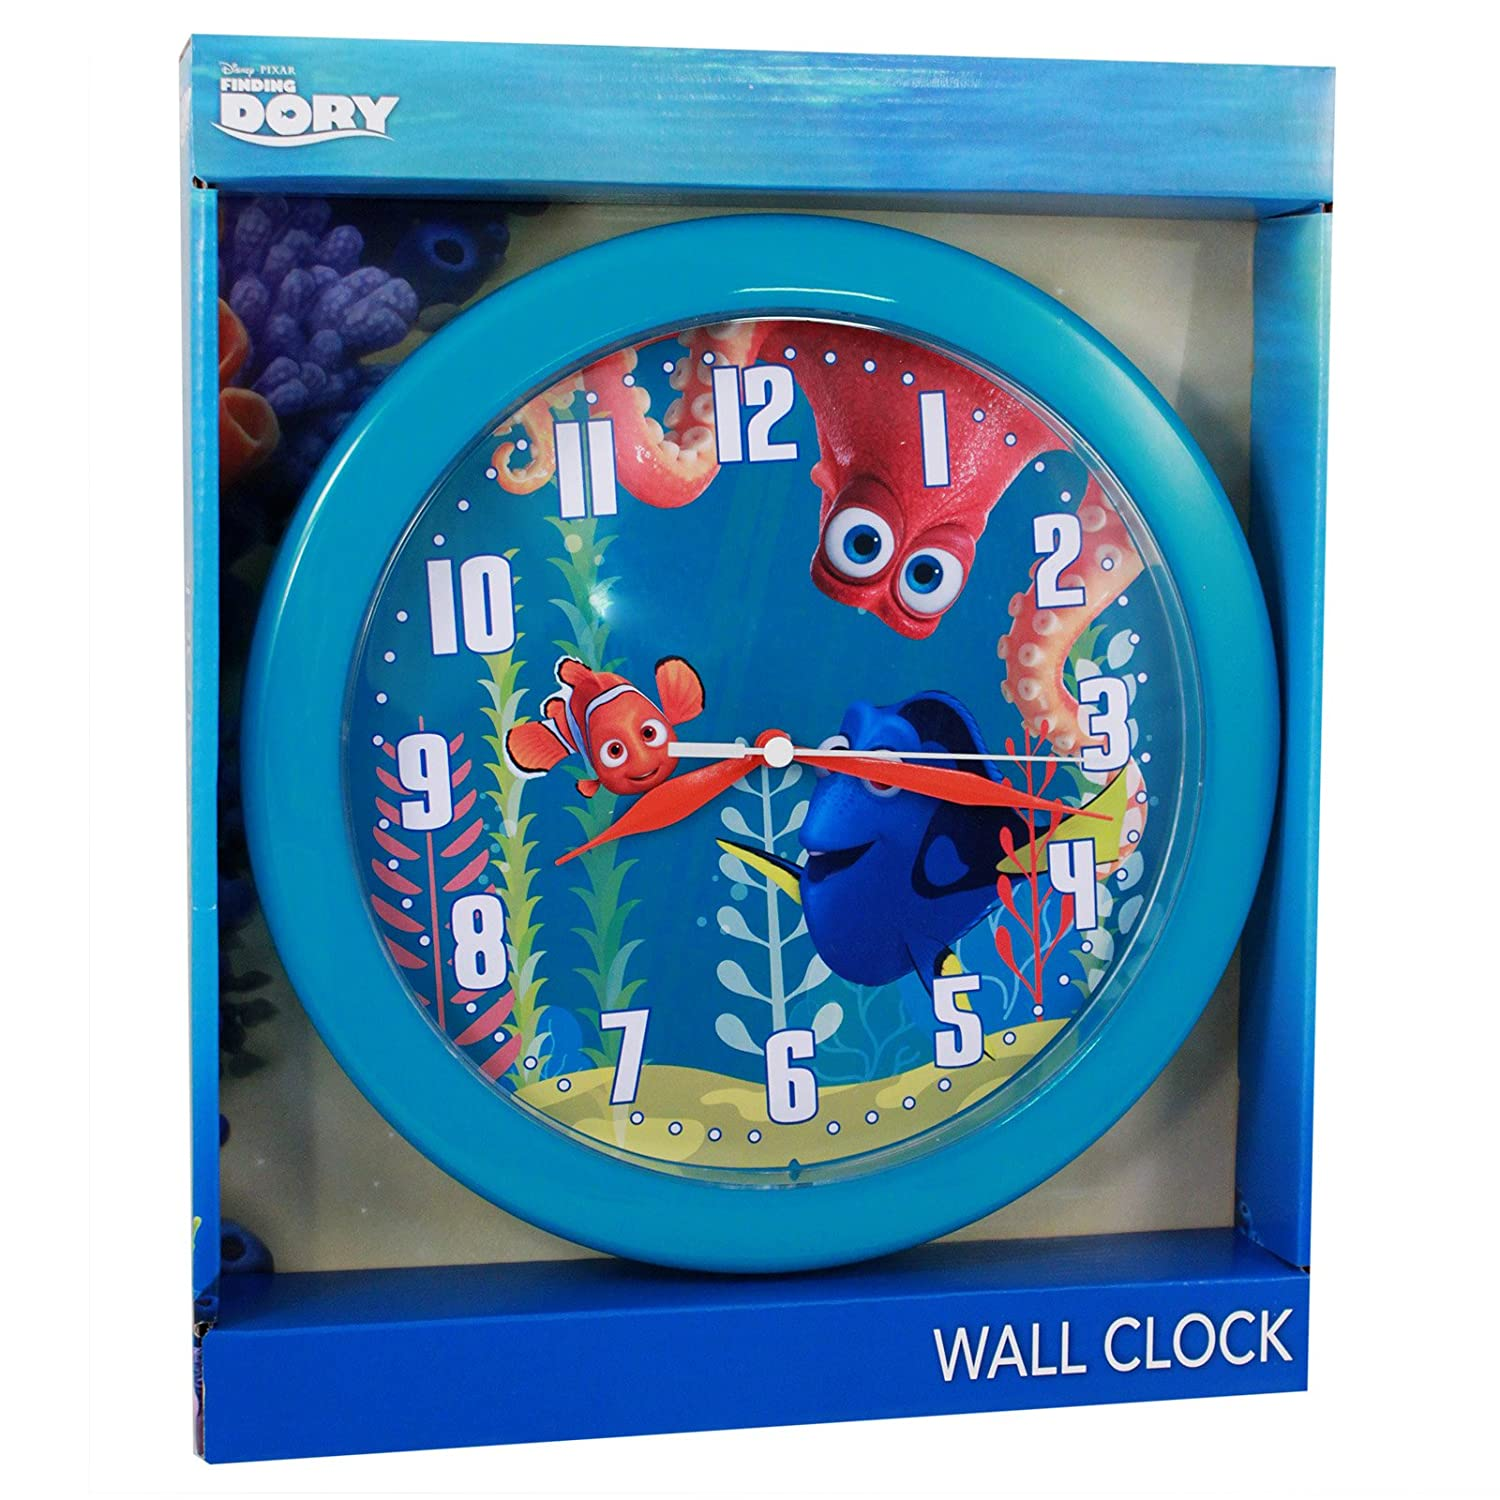 Finding Dory 6 Wall Or Desk Clock M.Z. Berger